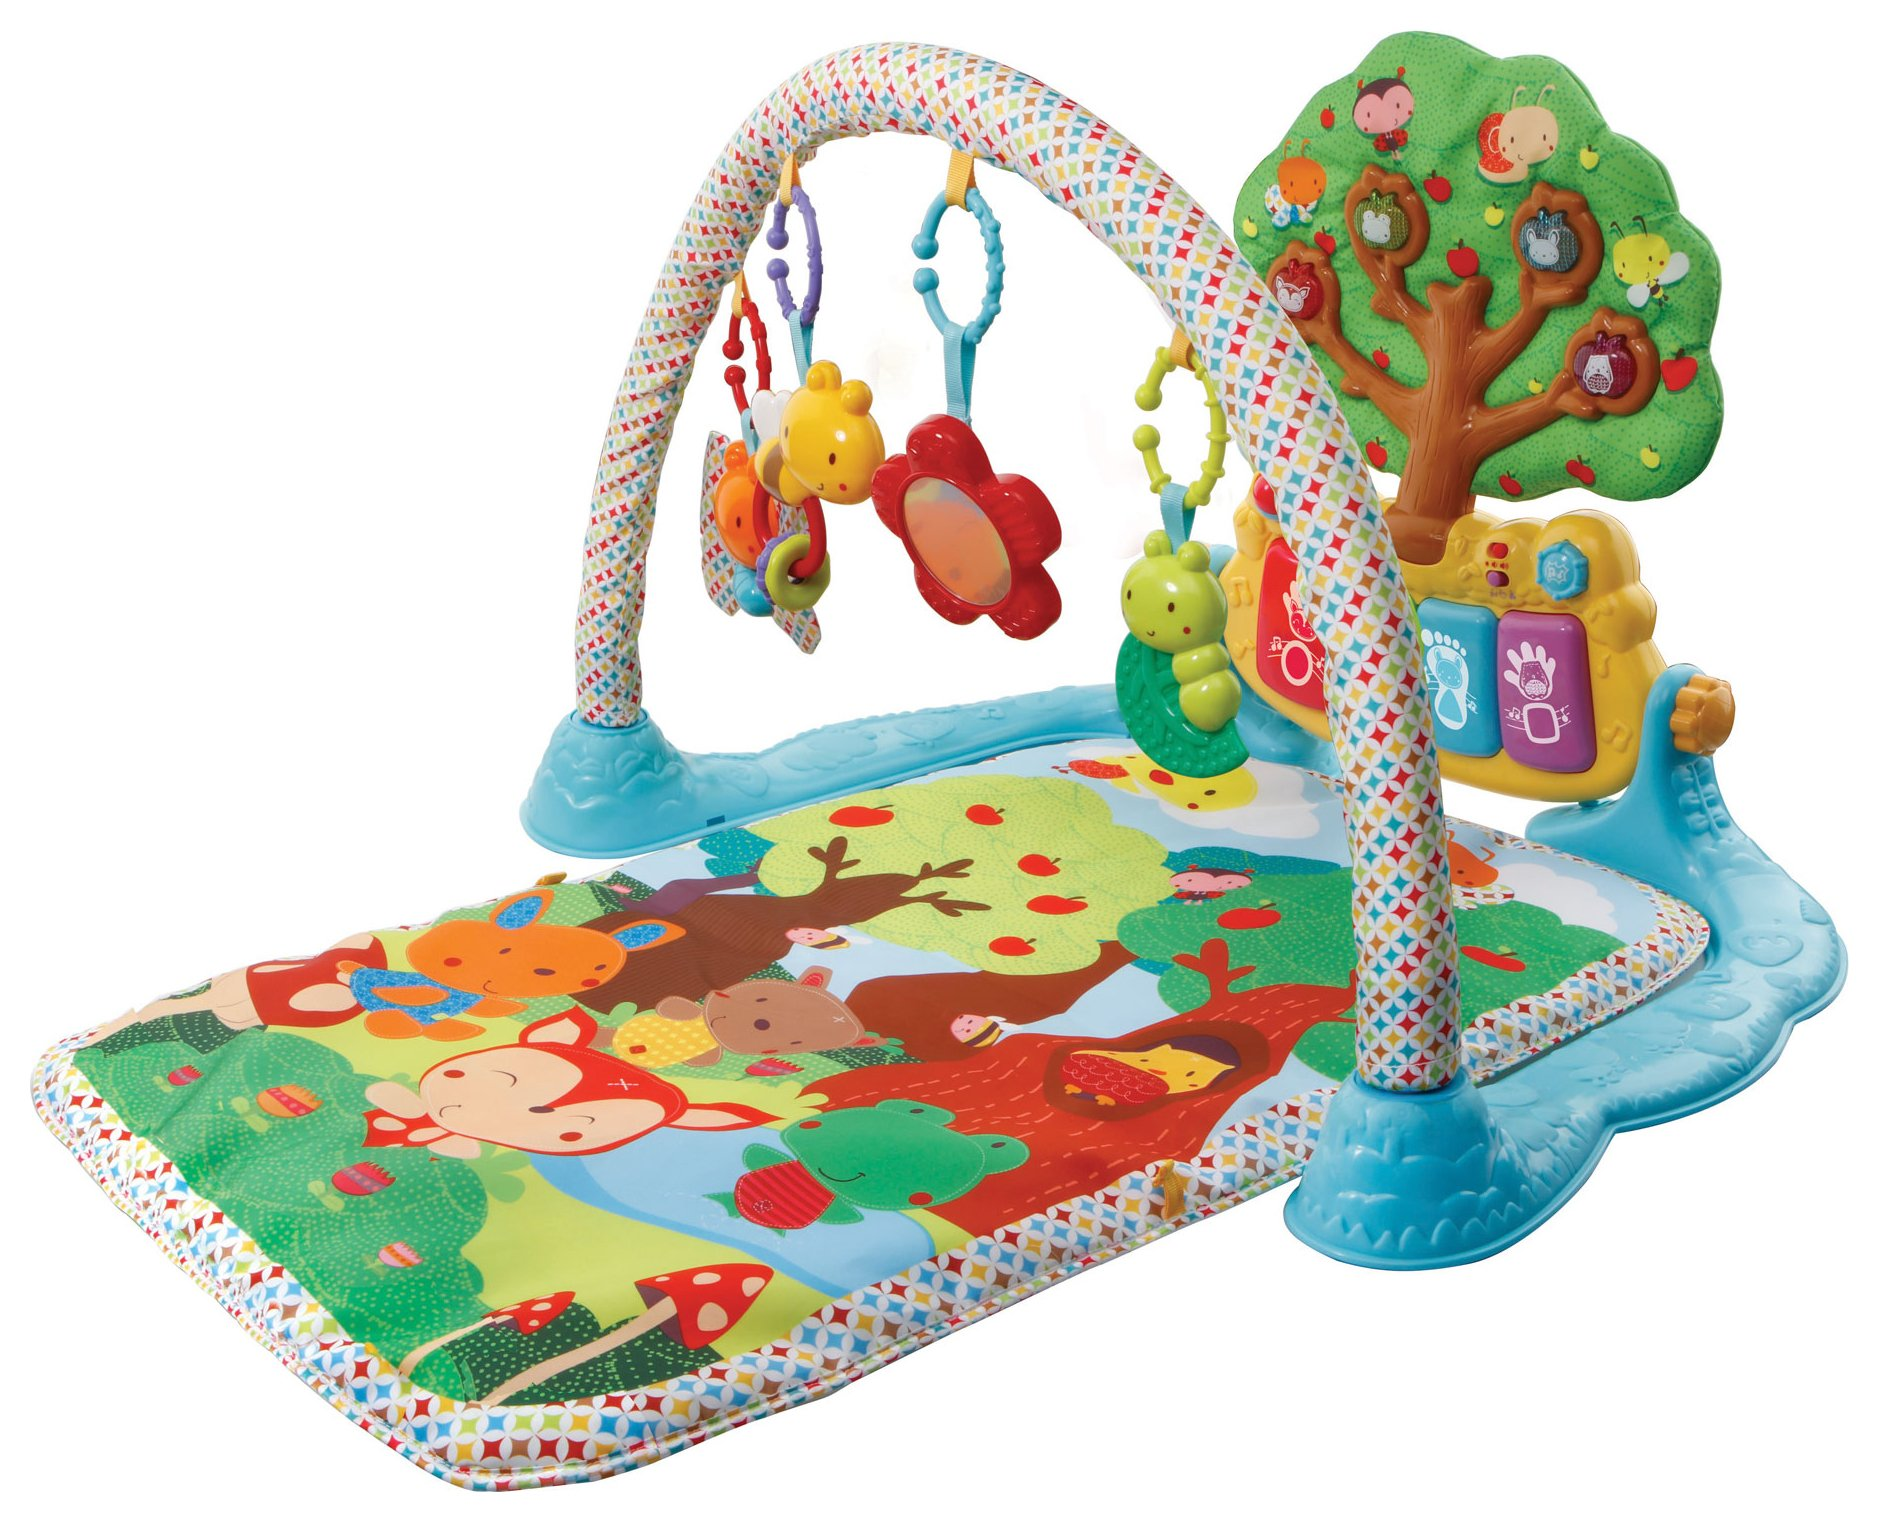 VTech Glow n Giggle Playmat & Play Gym from VTech